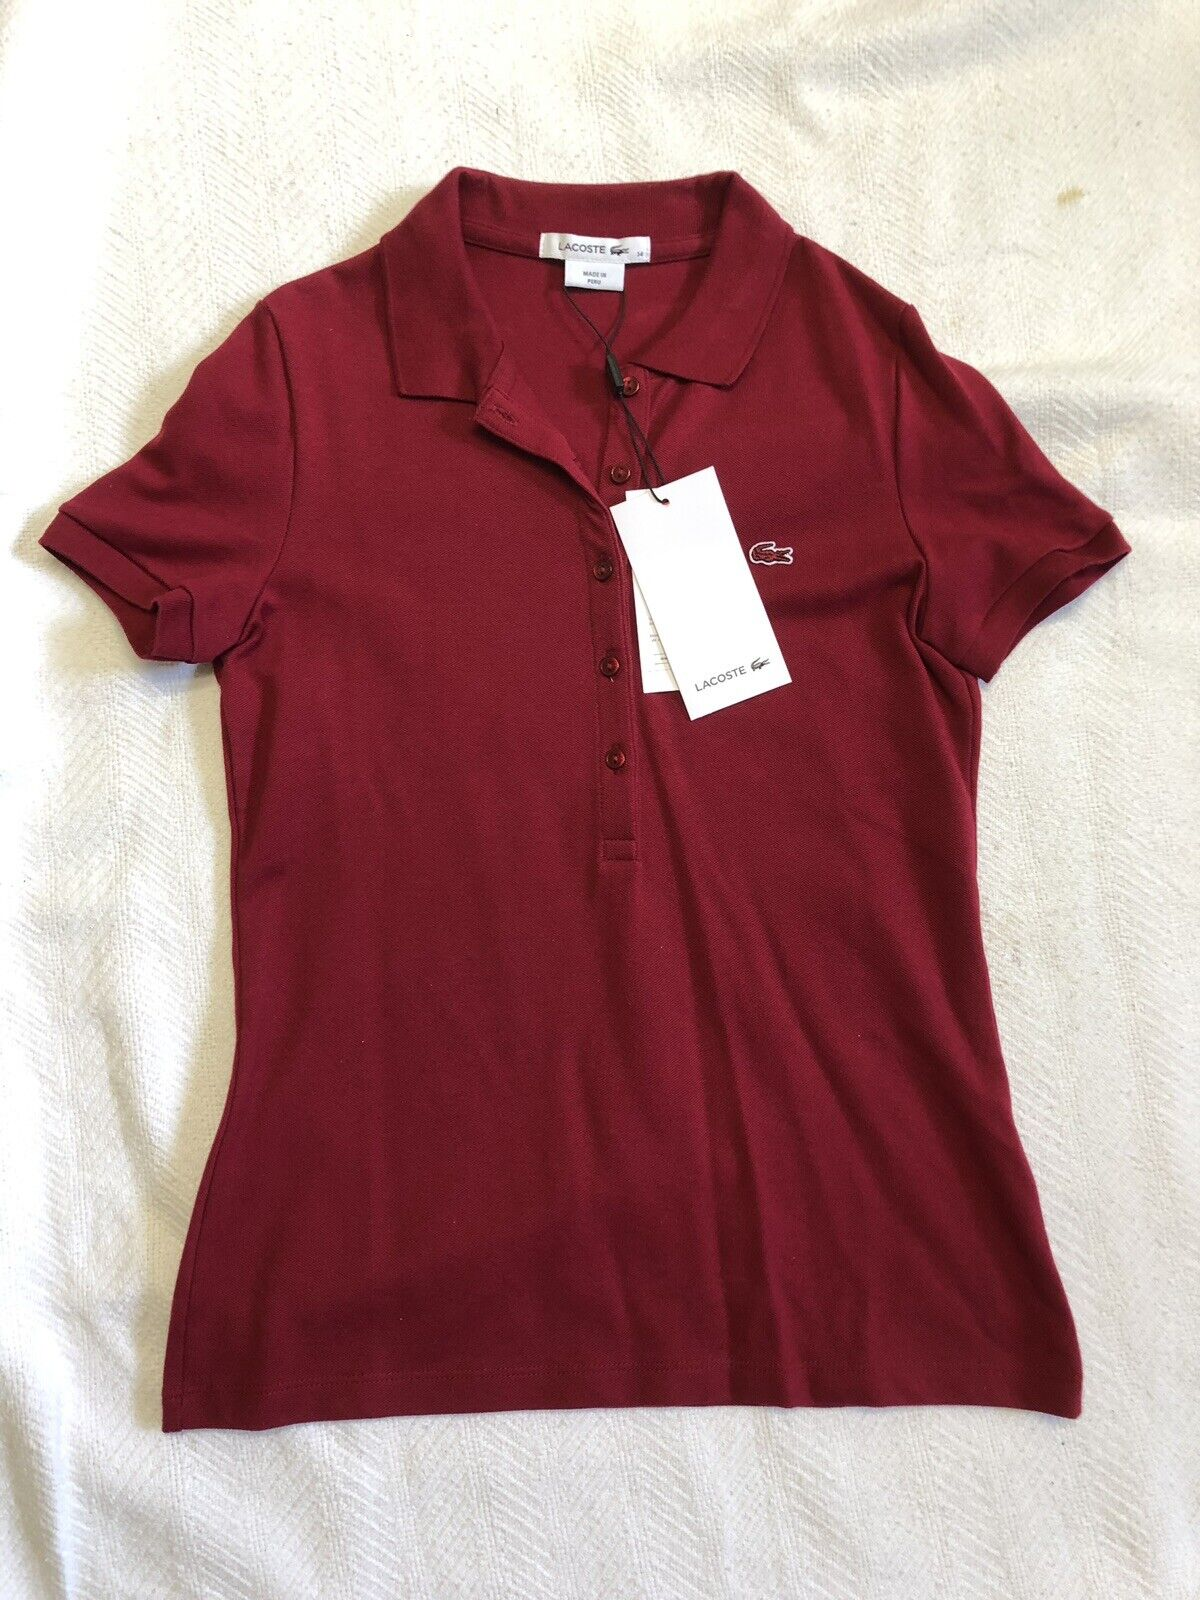 Women's Lacoste Pique Polo Style Shirt In Deep Red Sz 34 2 NWT